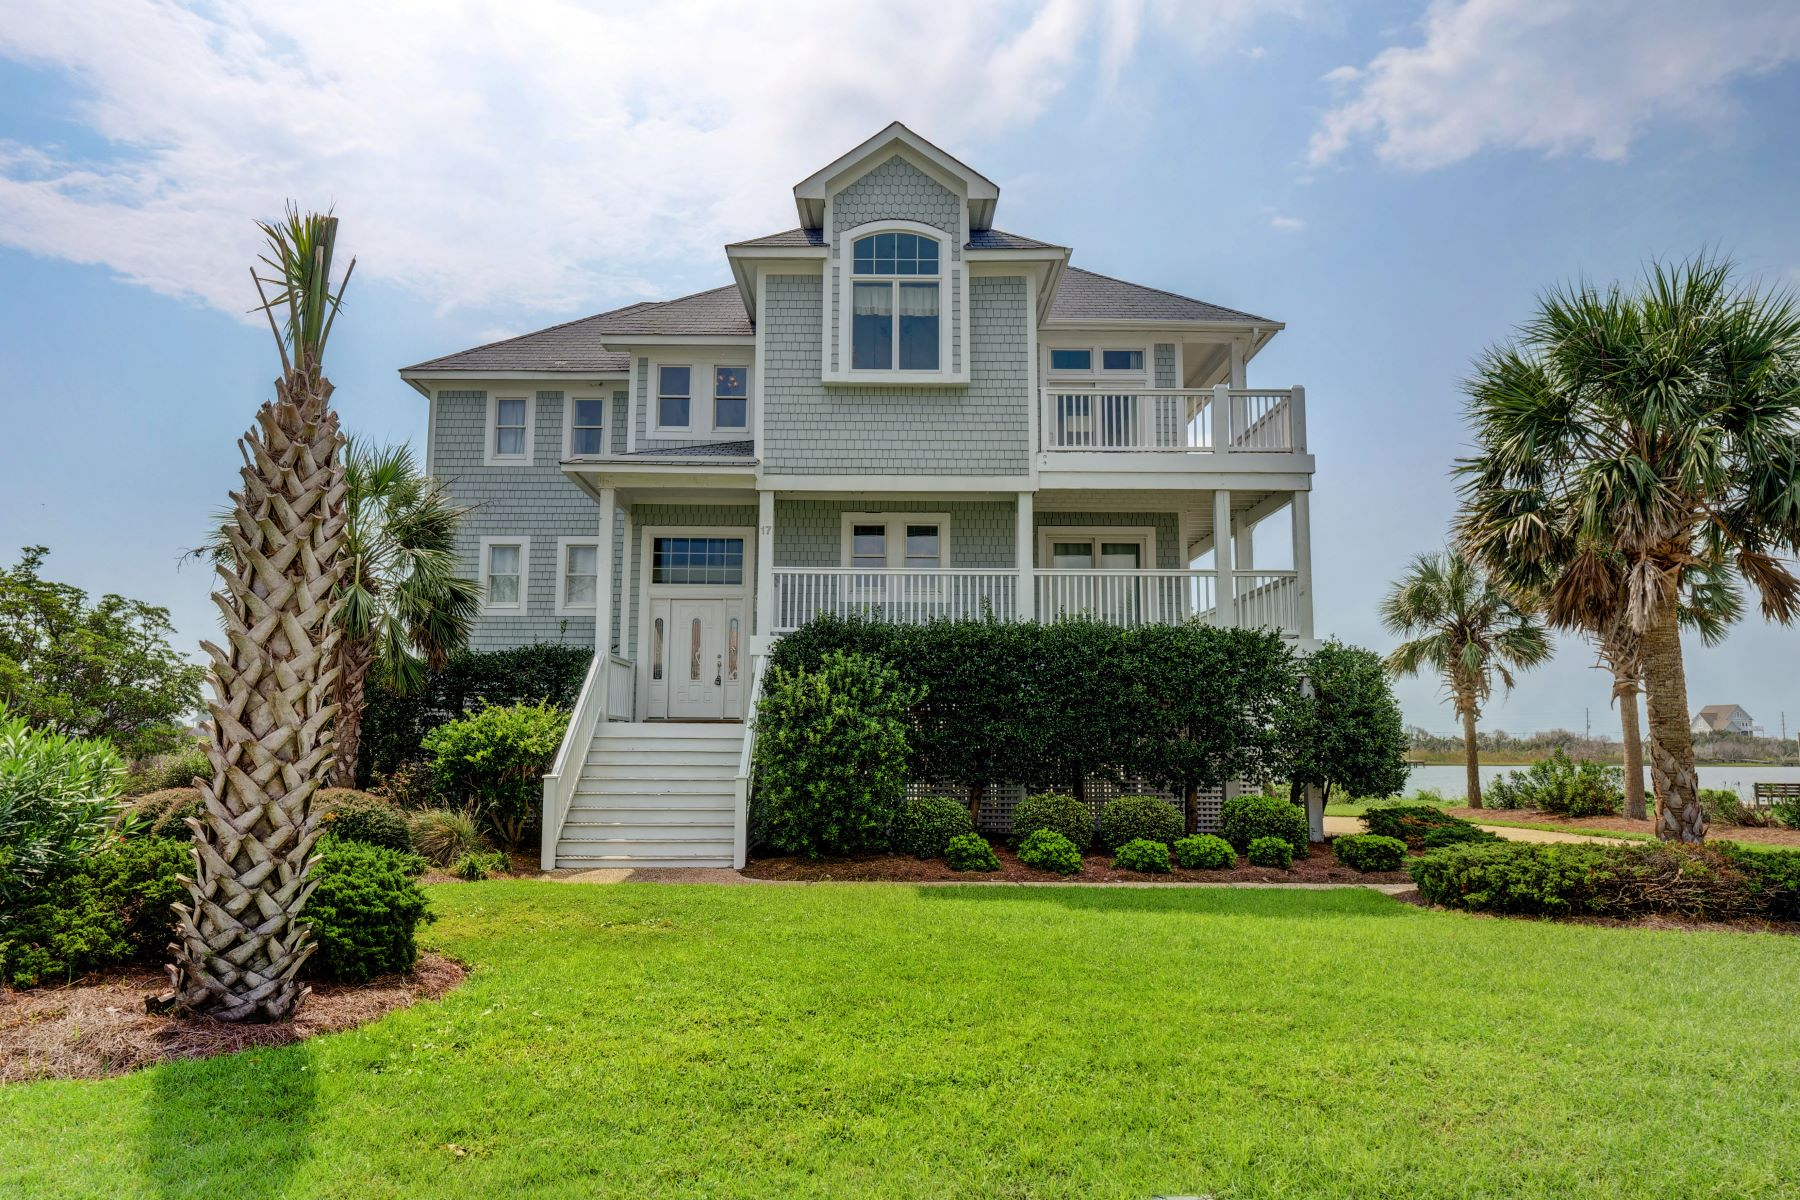 Single Family Homes for Active at Stunning Water Front Home 17 Sailview Drive N Topsail Beach, North Carolina 28460 United States